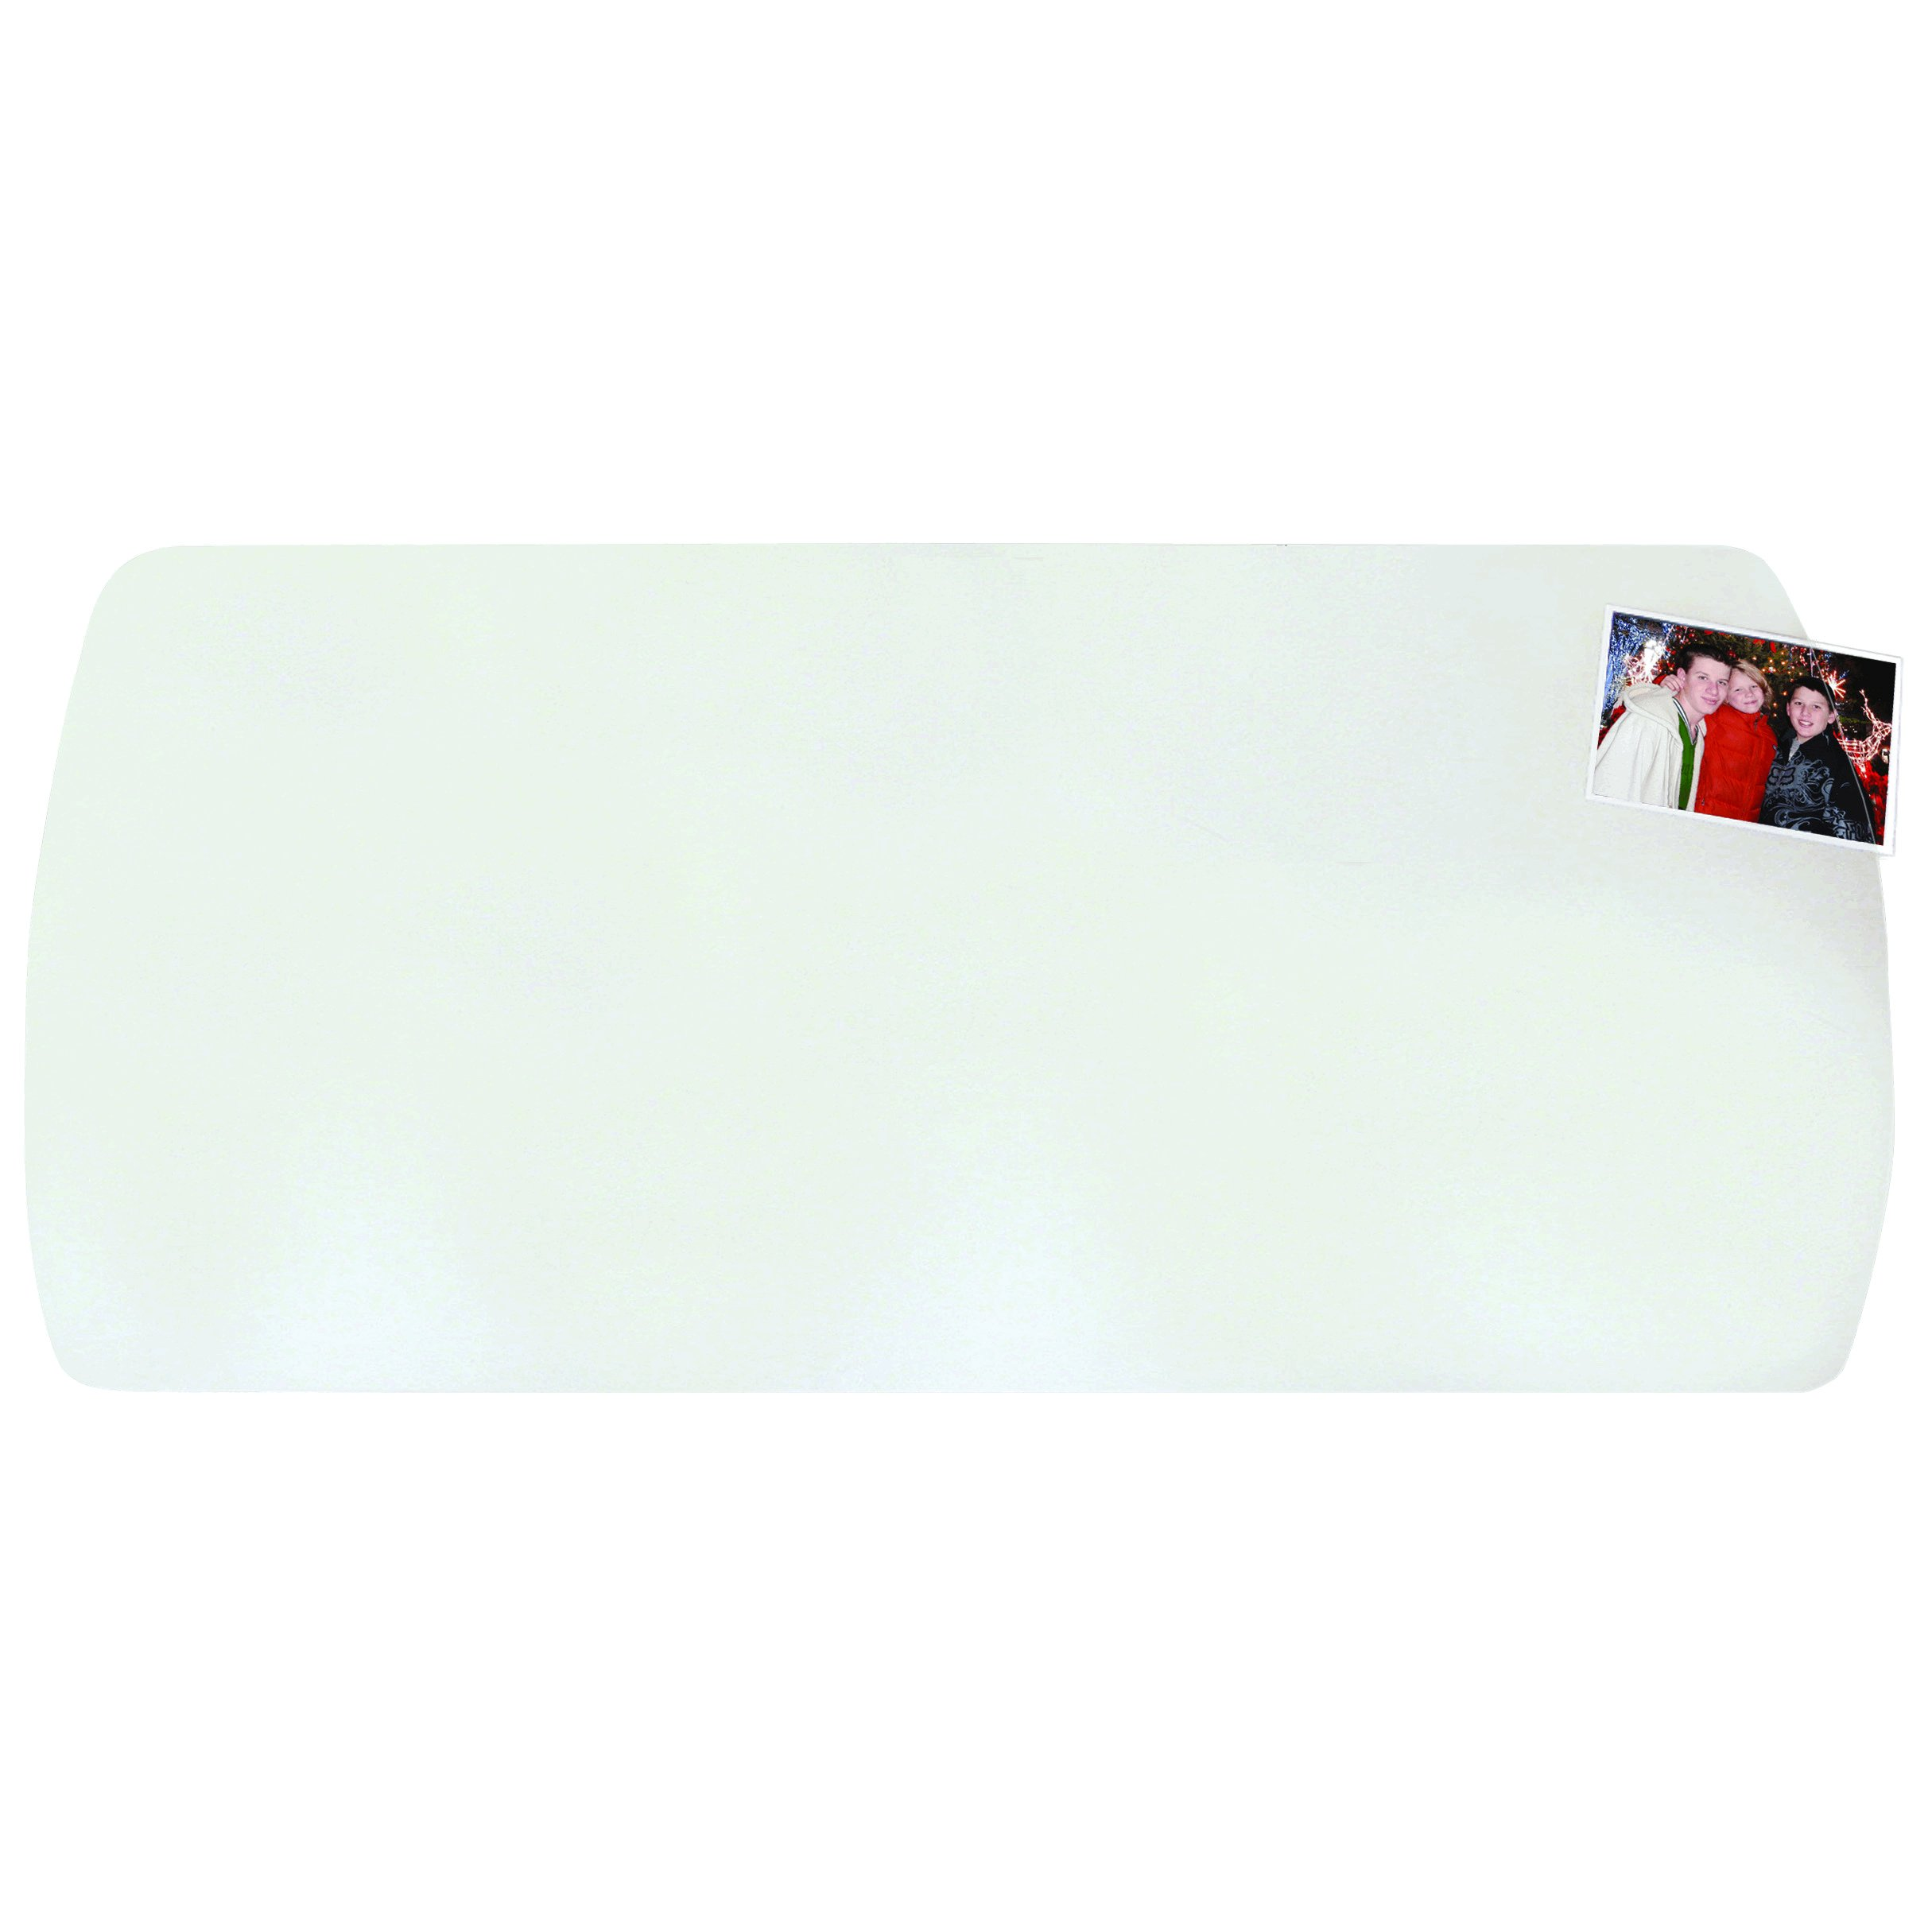 Artistic 60-7-5M 14'' x 30'' Krystal View Curved Desk Pad for Workstations with Exclusive Microban Antimicrobial Protection, Clear